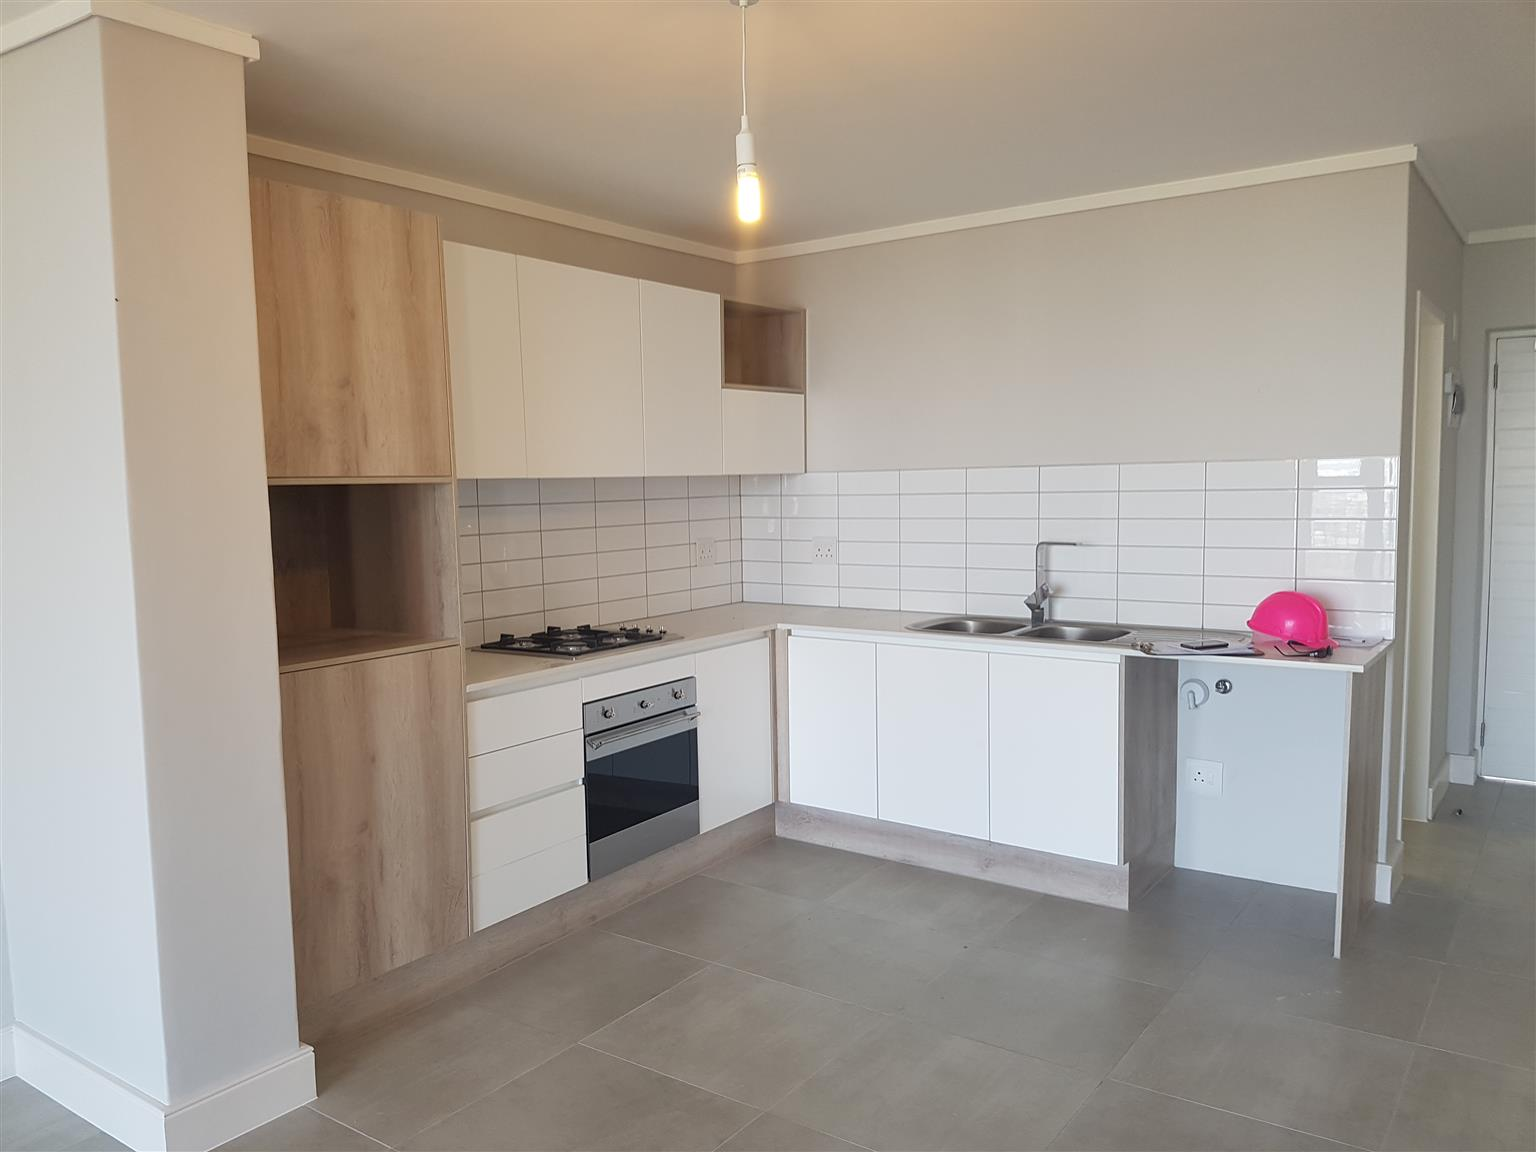 NEW 2 bed, 2 bath - Apartment for rent in Century City, available immediately R13500 pm